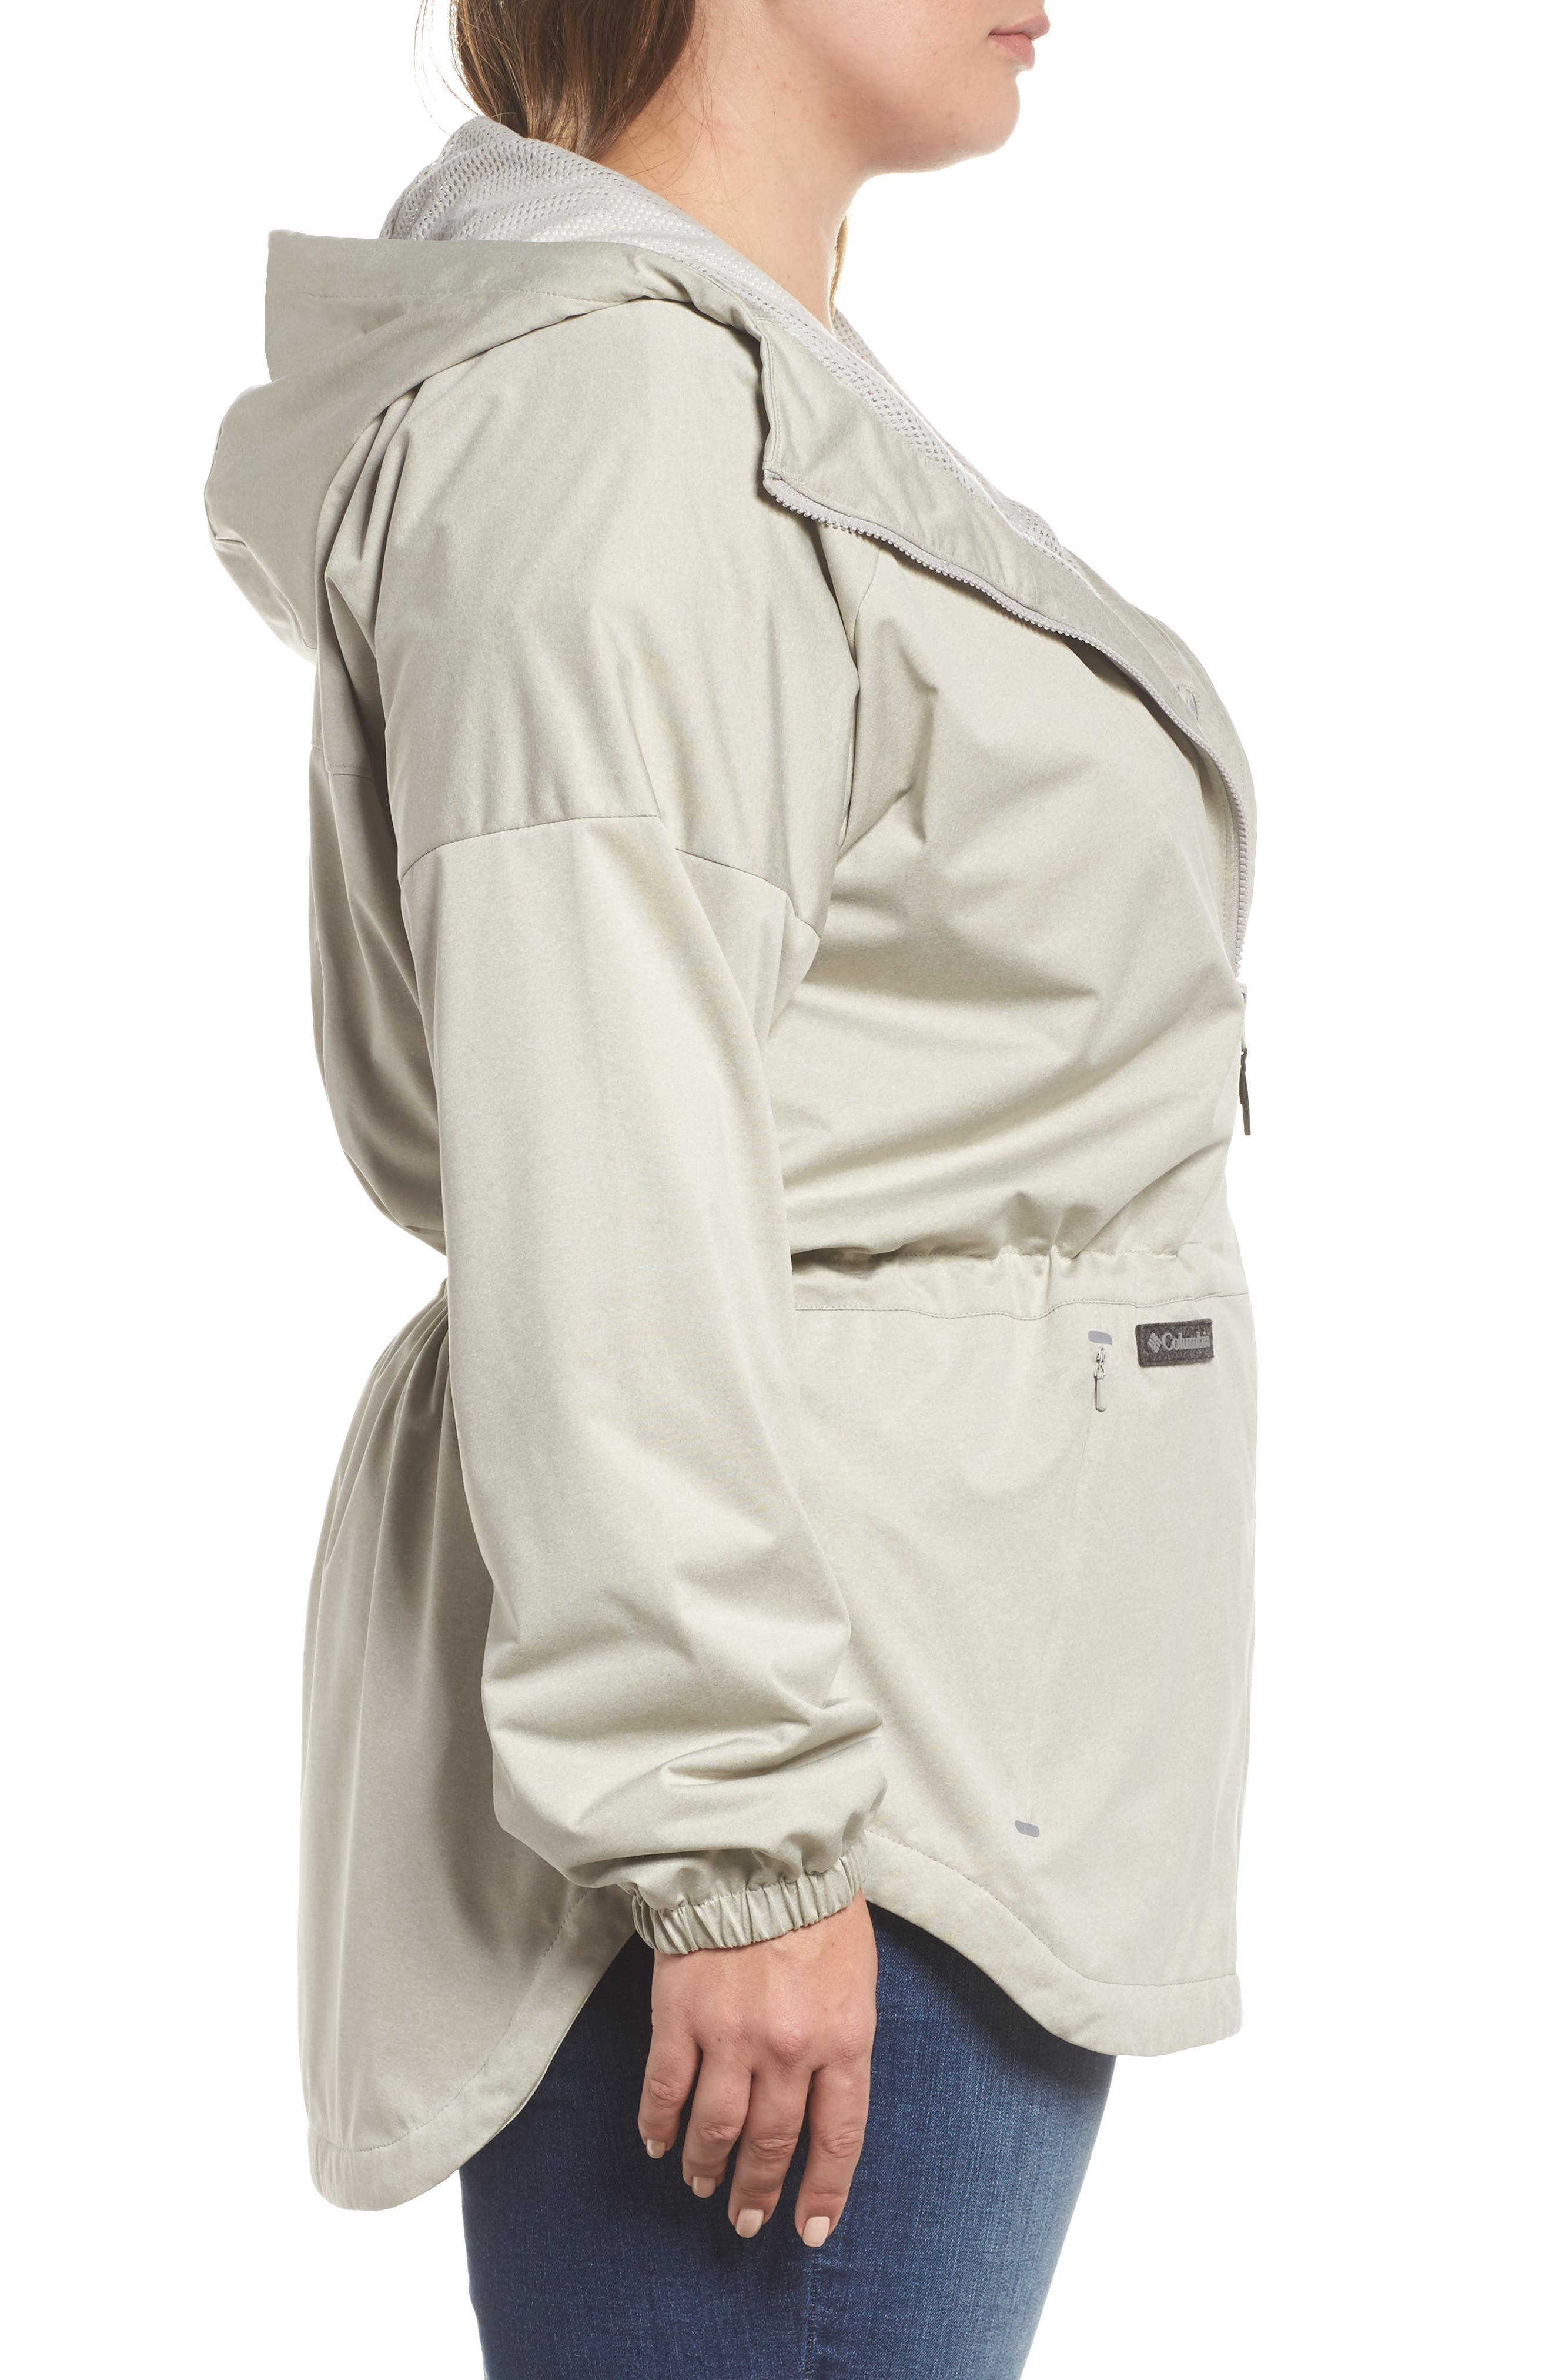 Northbounder Waterproof Hooded Jacket,                             Alternate thumbnail 3, color,                             Flint Grey Heather